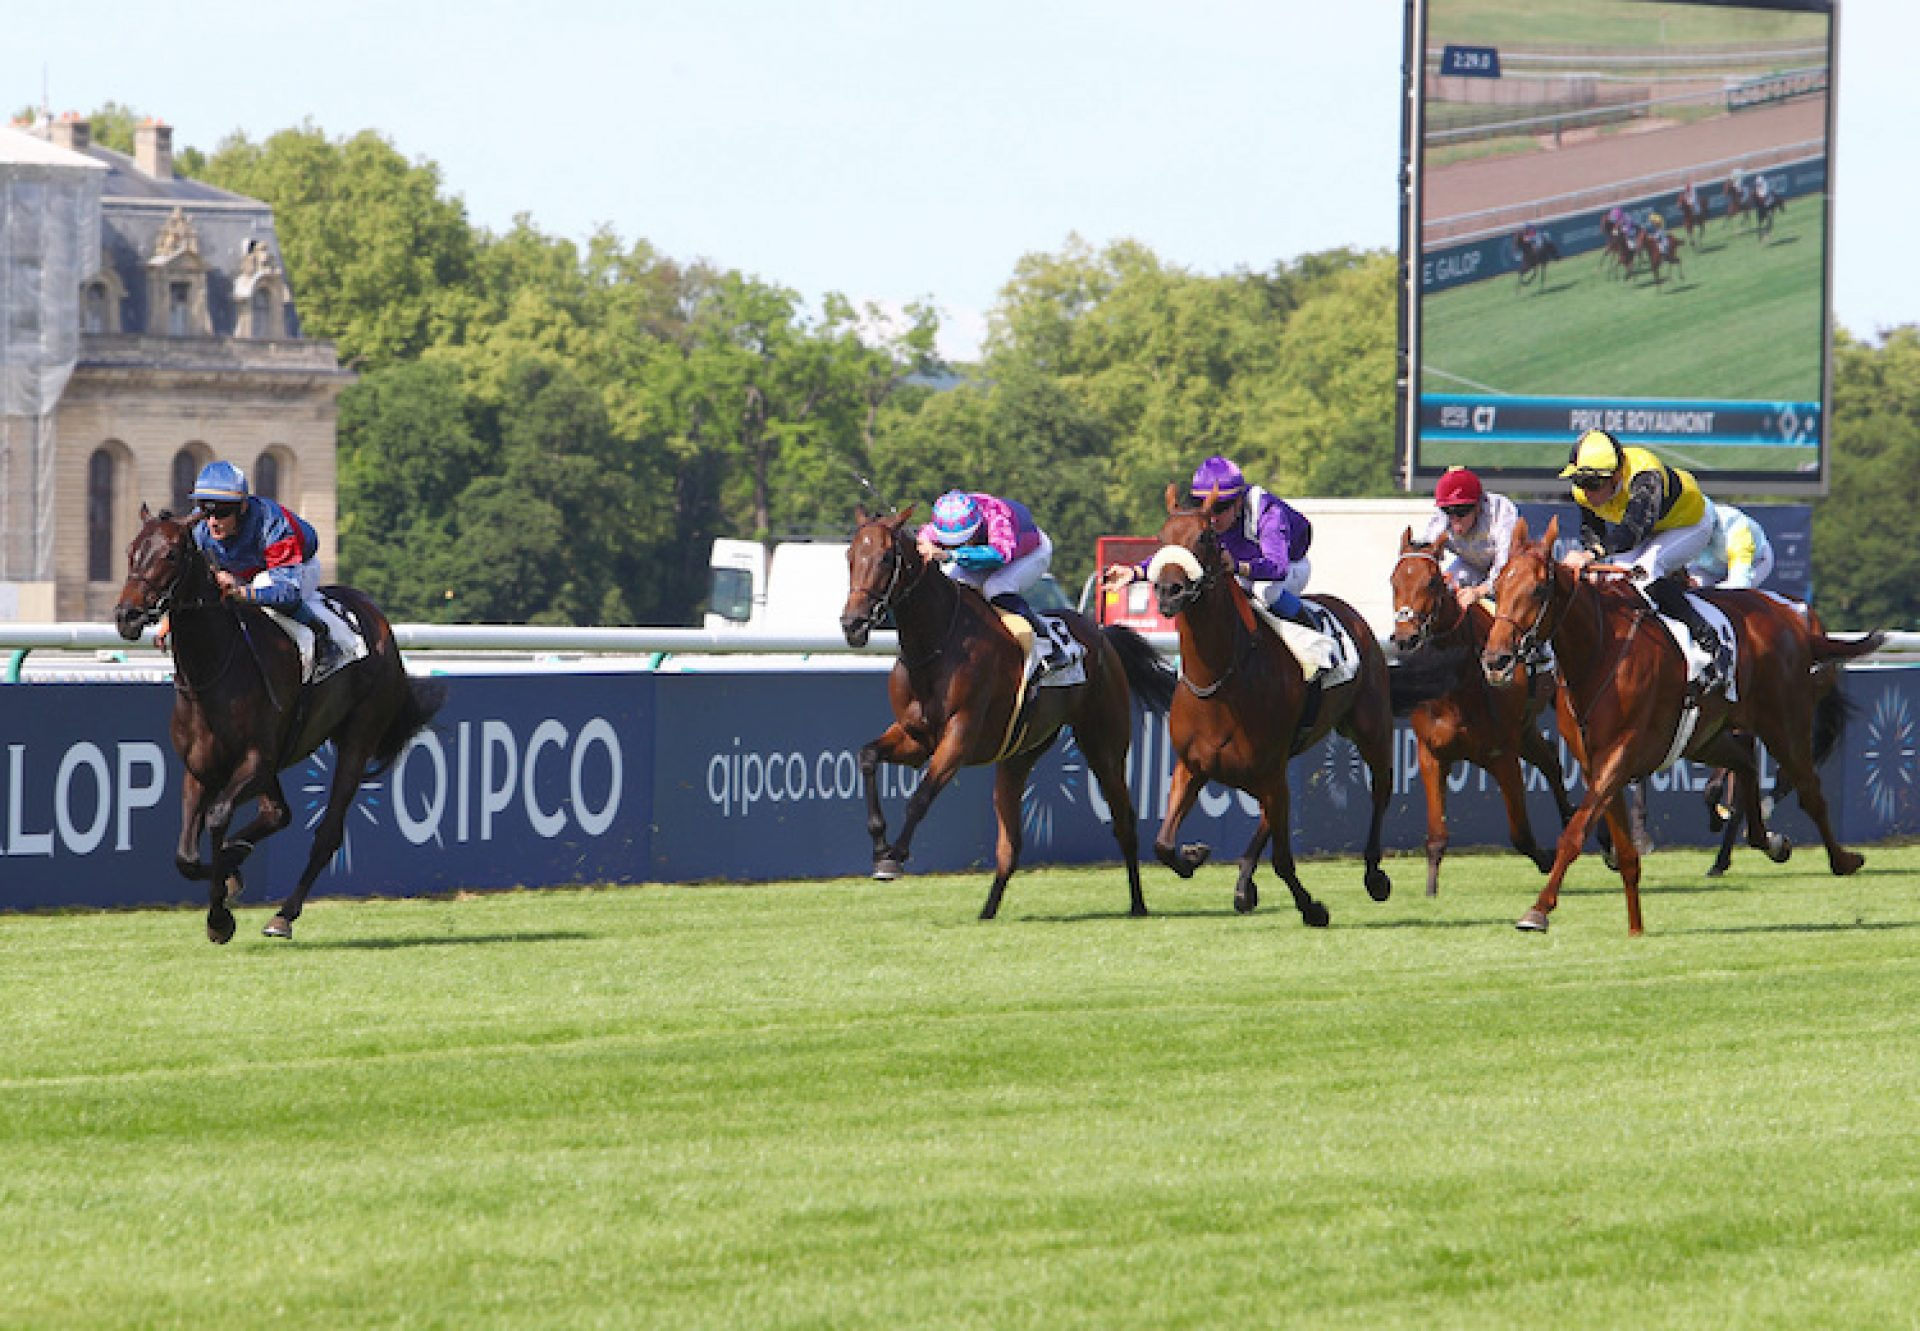 Pollara (Camelot) winning the G3 Prix de Royaumont at Chantilly